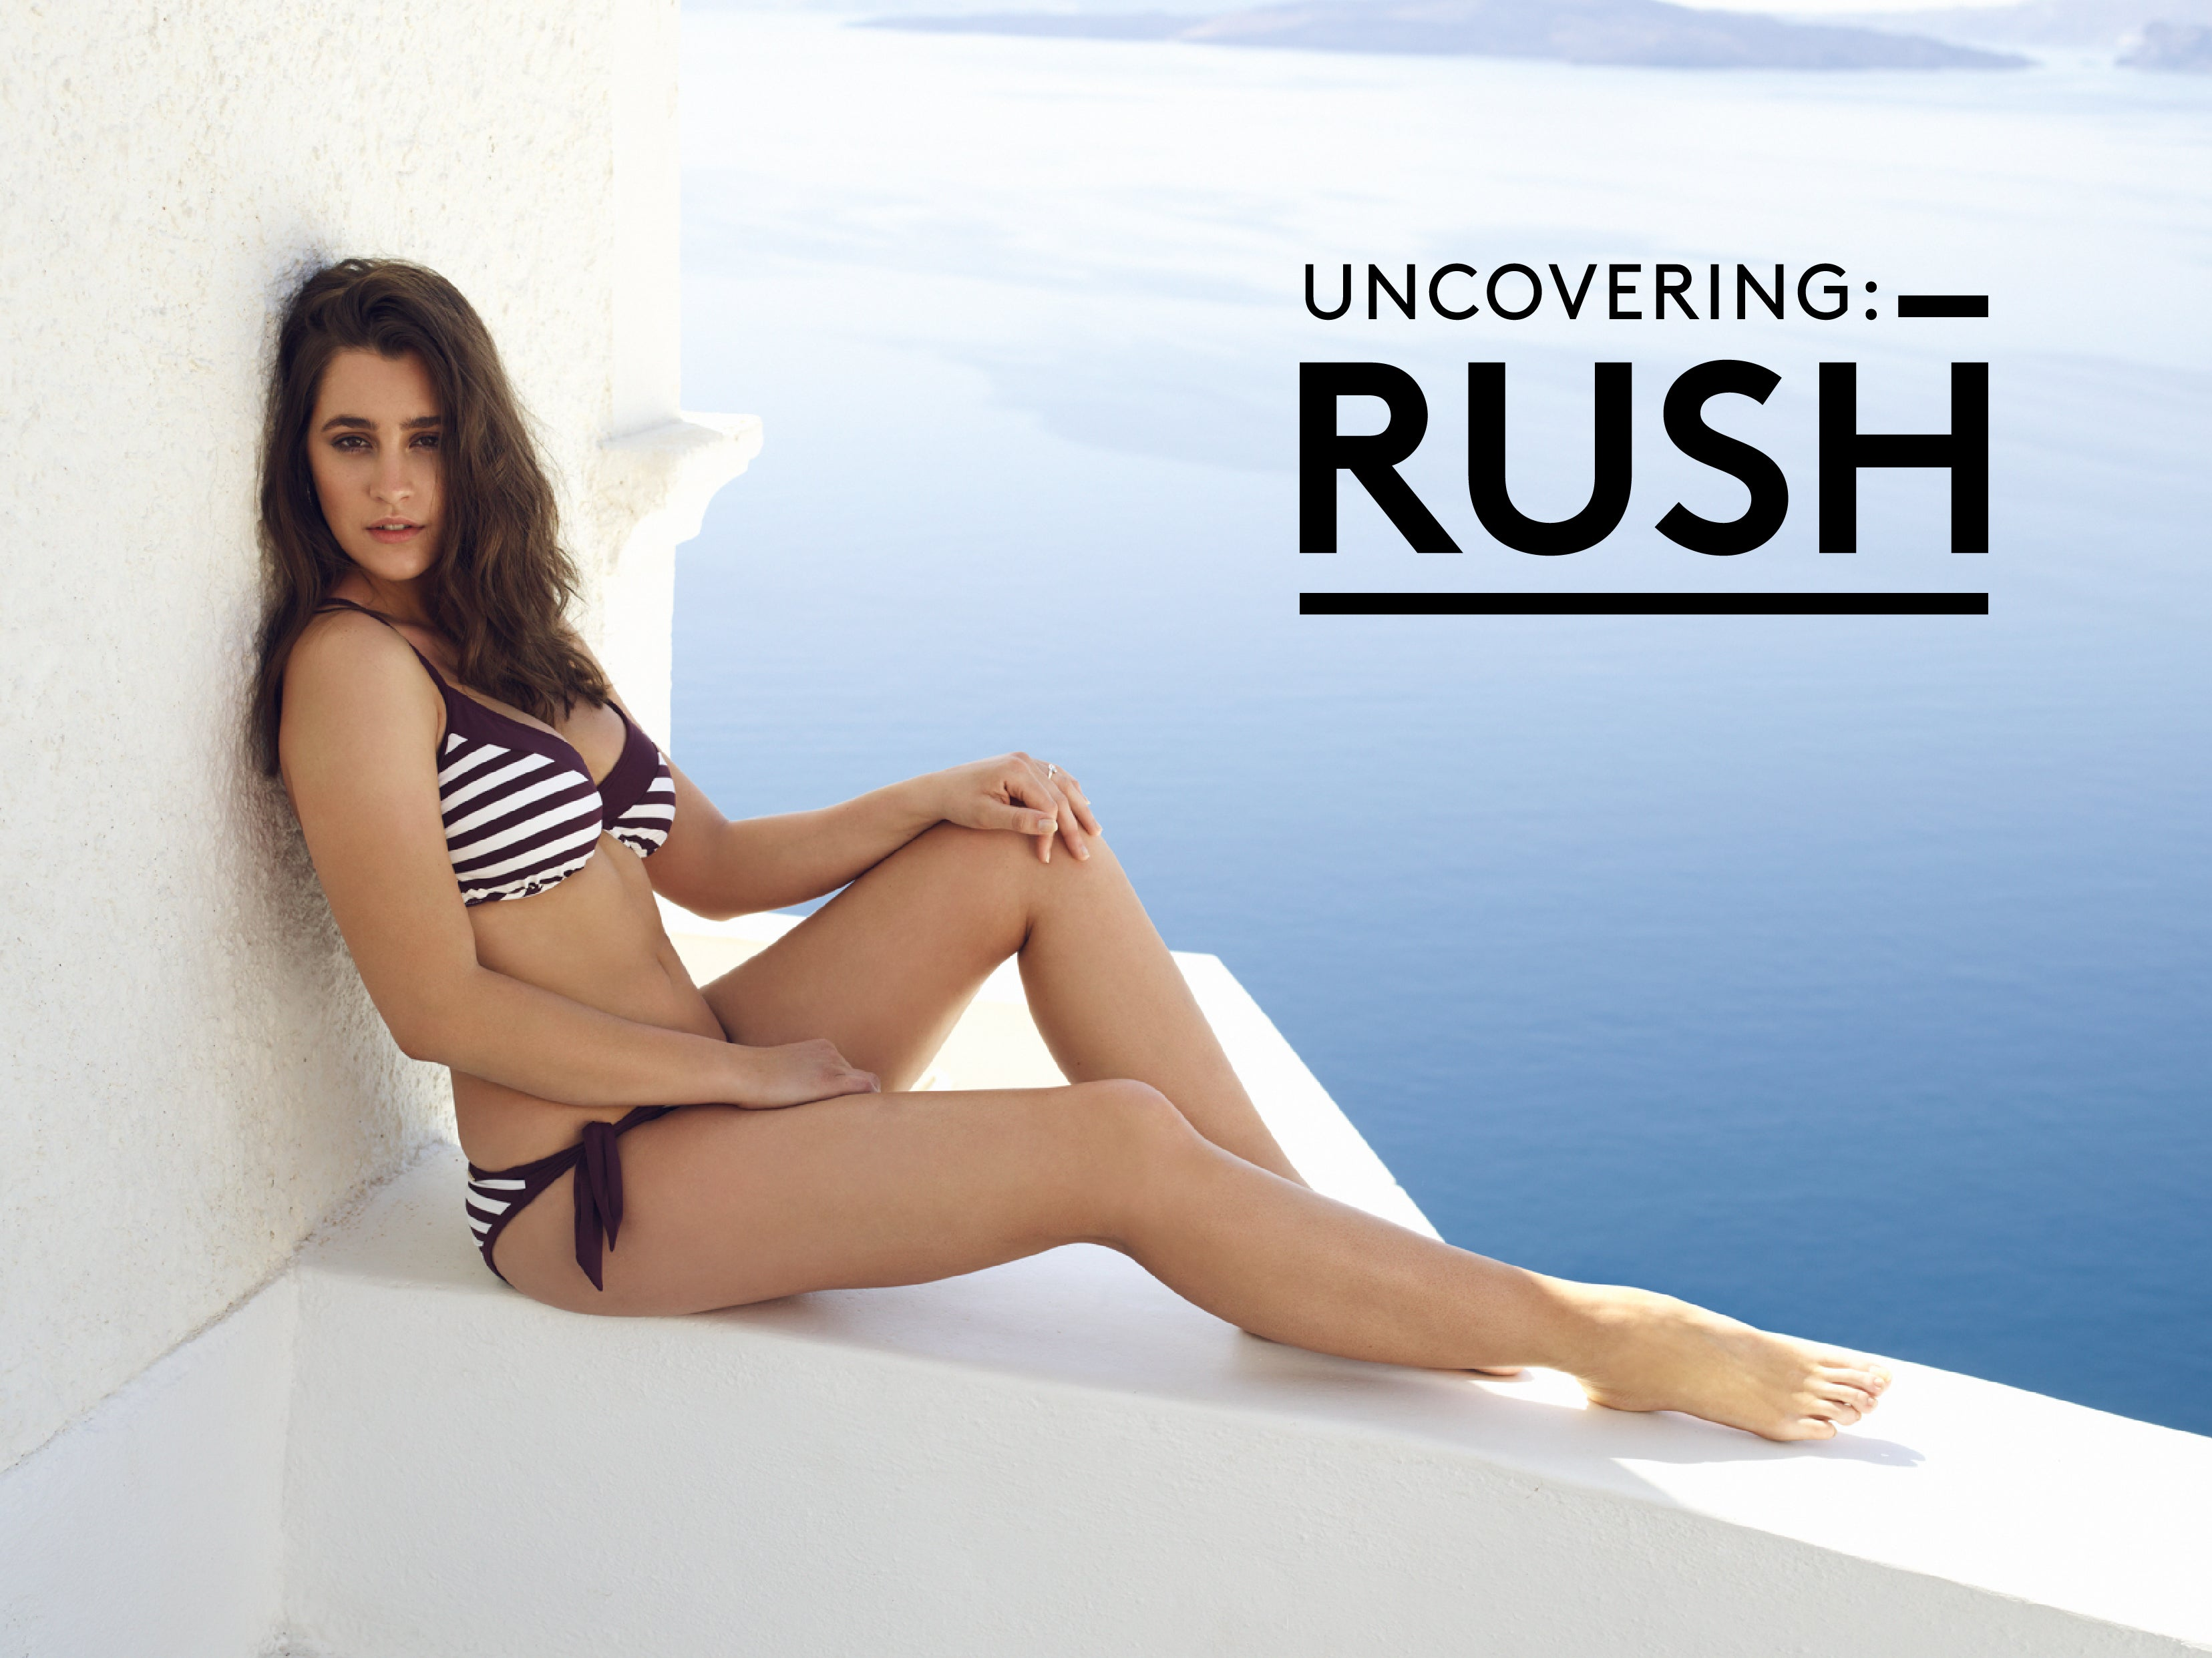 Uncovering: RUSH